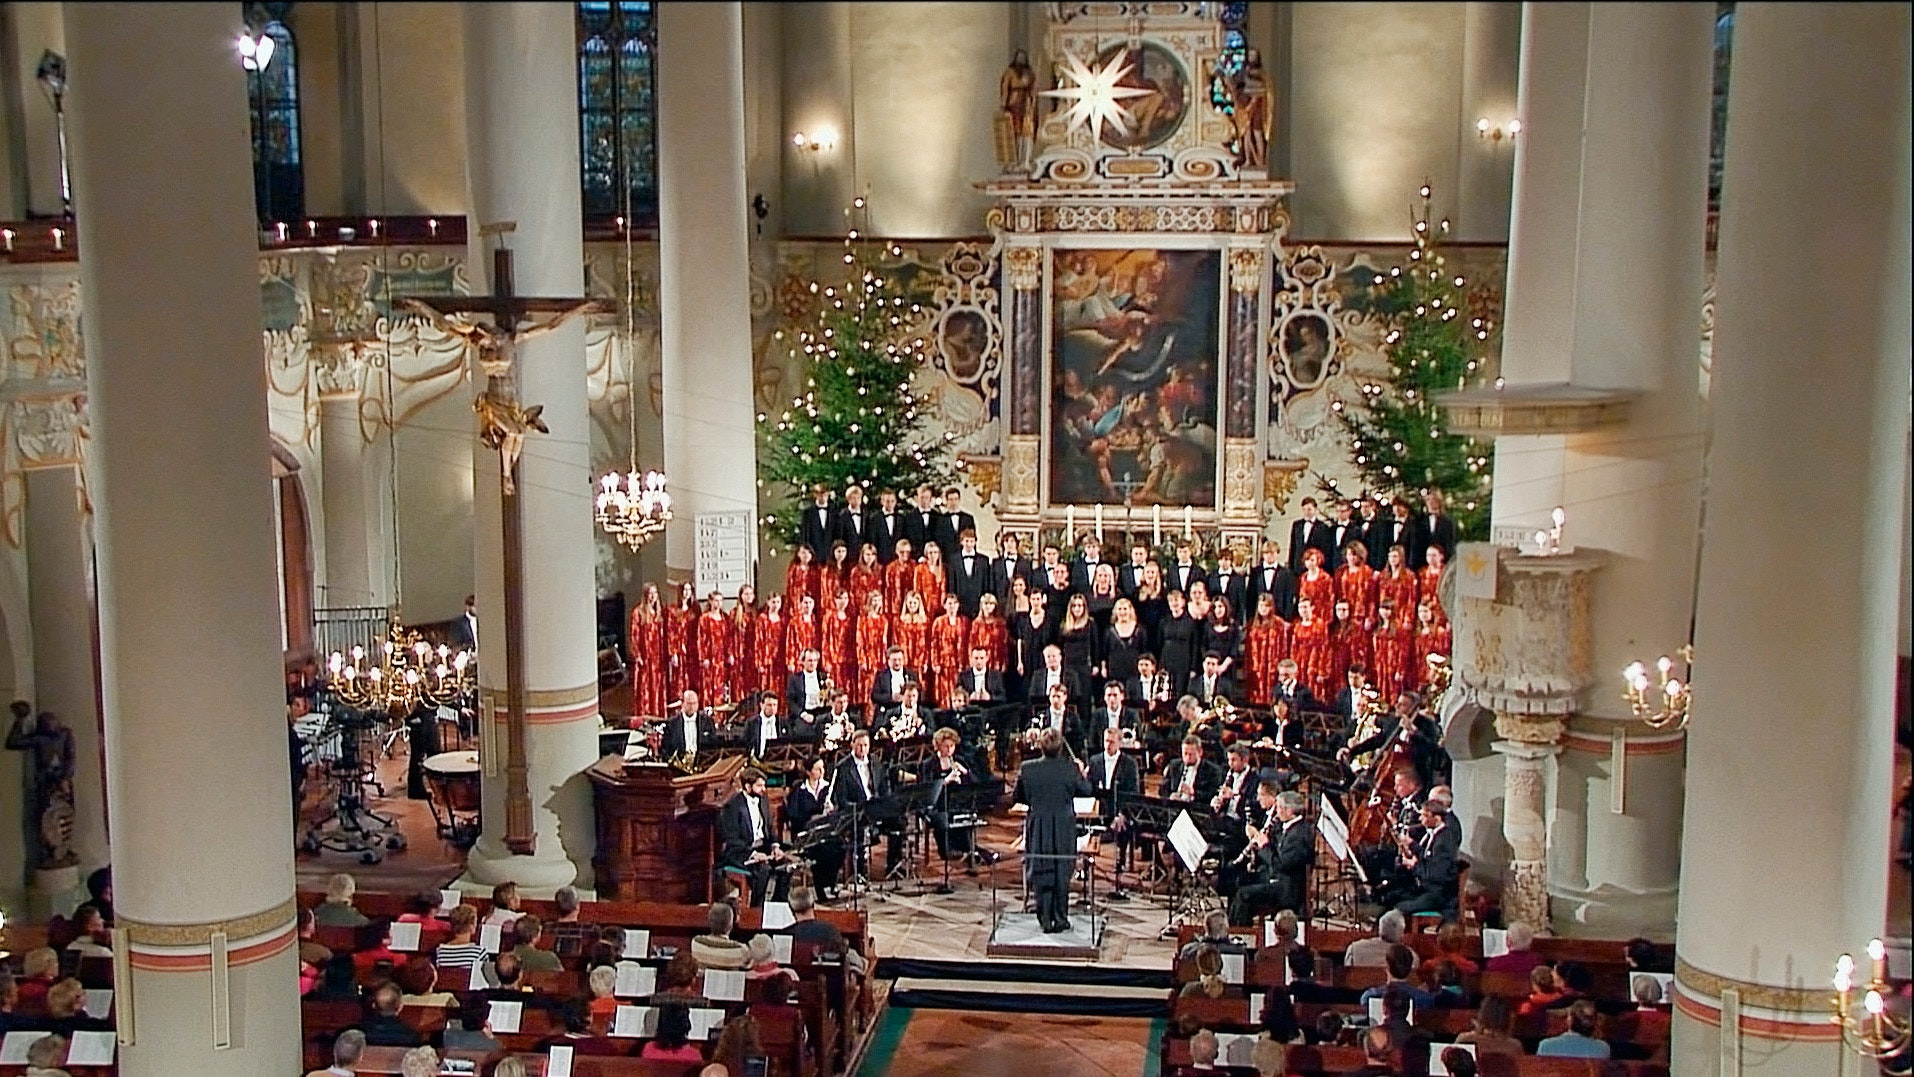 Thomas Clamor conducts a Christmas concert in Marienberg – With Ruth Ziesac